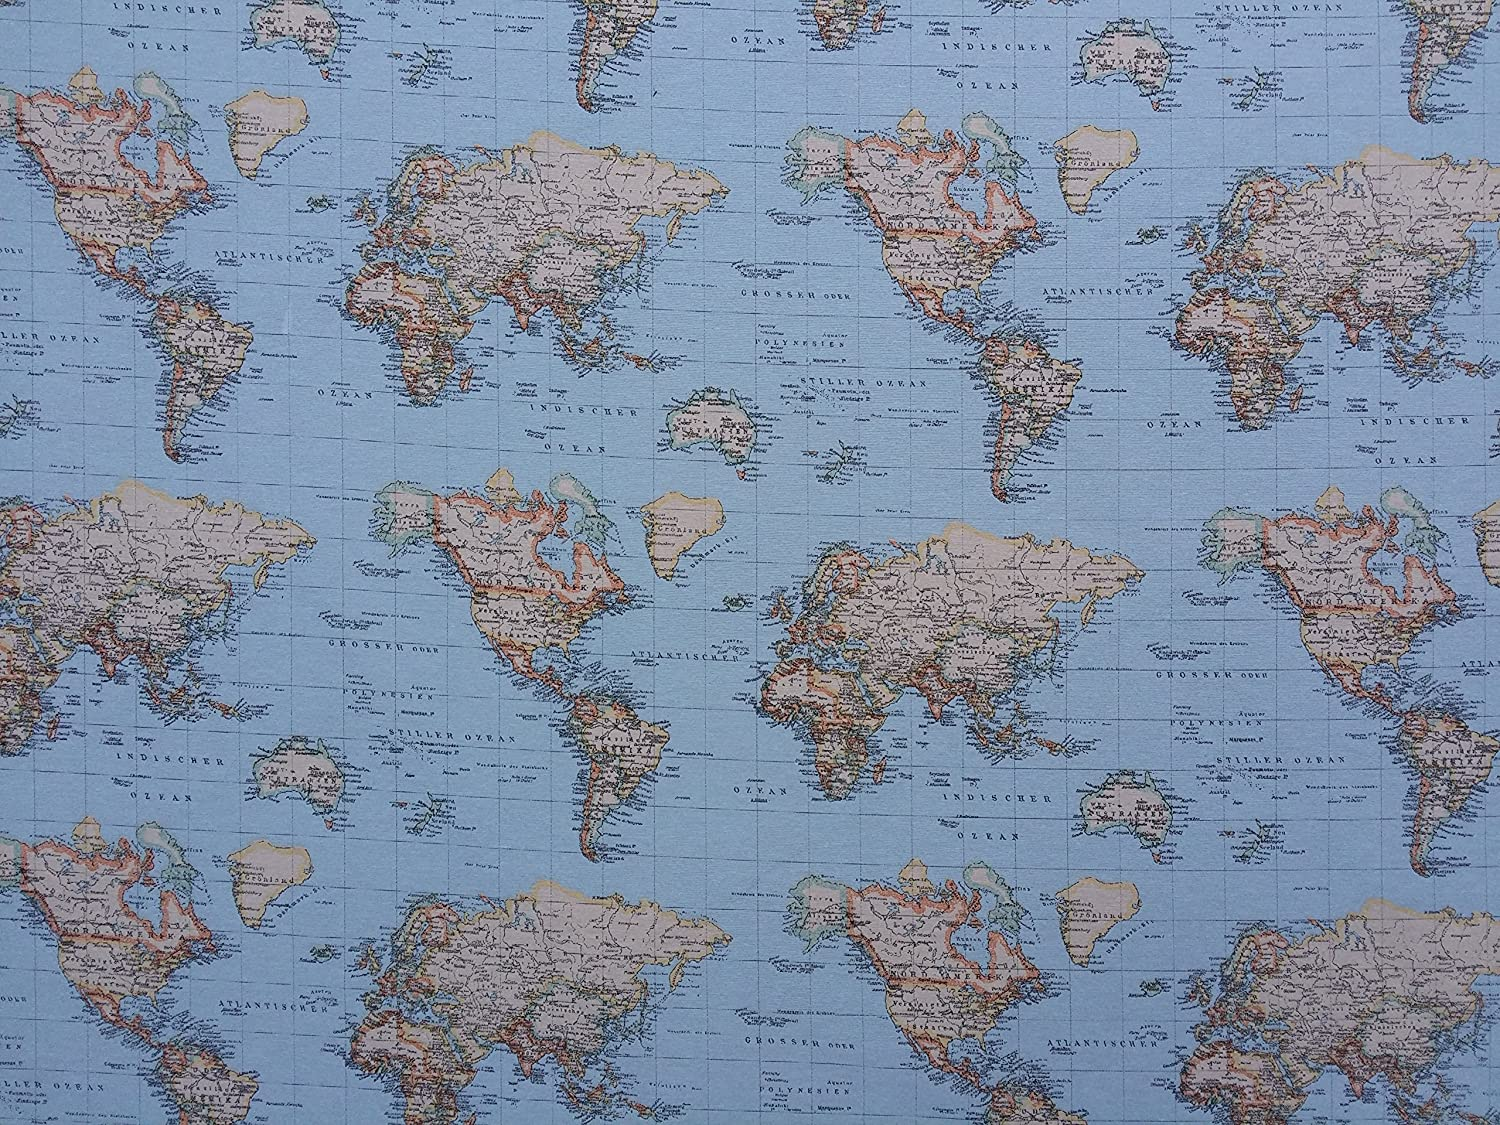 World map print 100 cotton designer curtains bedding cushion world map print 100 cotton designer curtains bedding cushion covers upholstery roman blinds fabric prestige fashion uk ltd amazon kitchen gumiabroncs Gallery